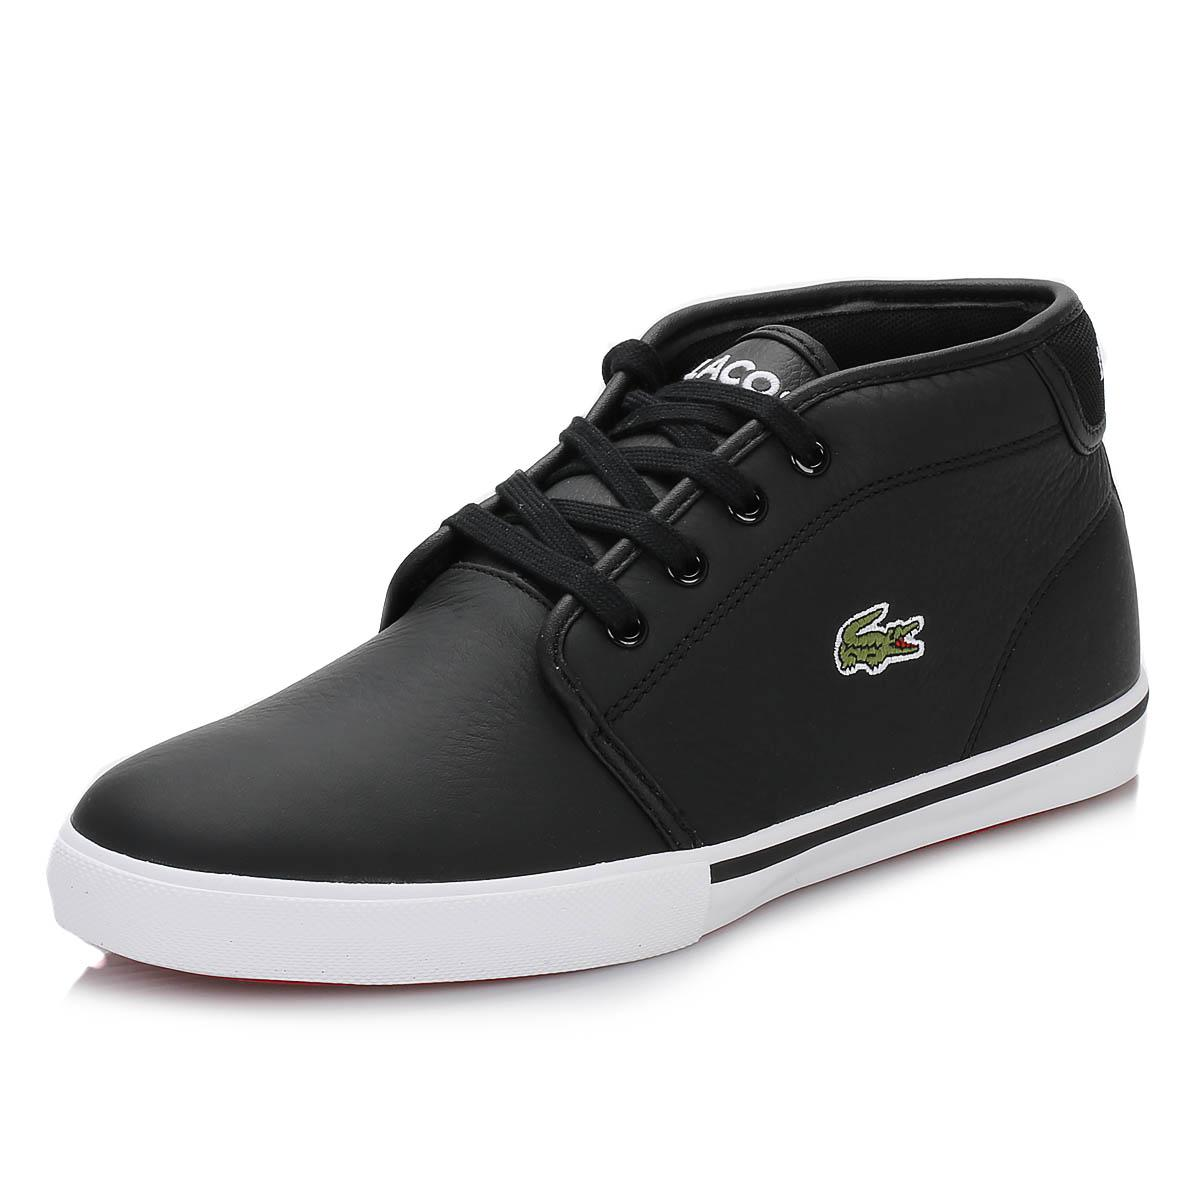 404c1b802 Lacoste Mens Black Ampthill Trainers in Black for Men - Save 11% - Lyst